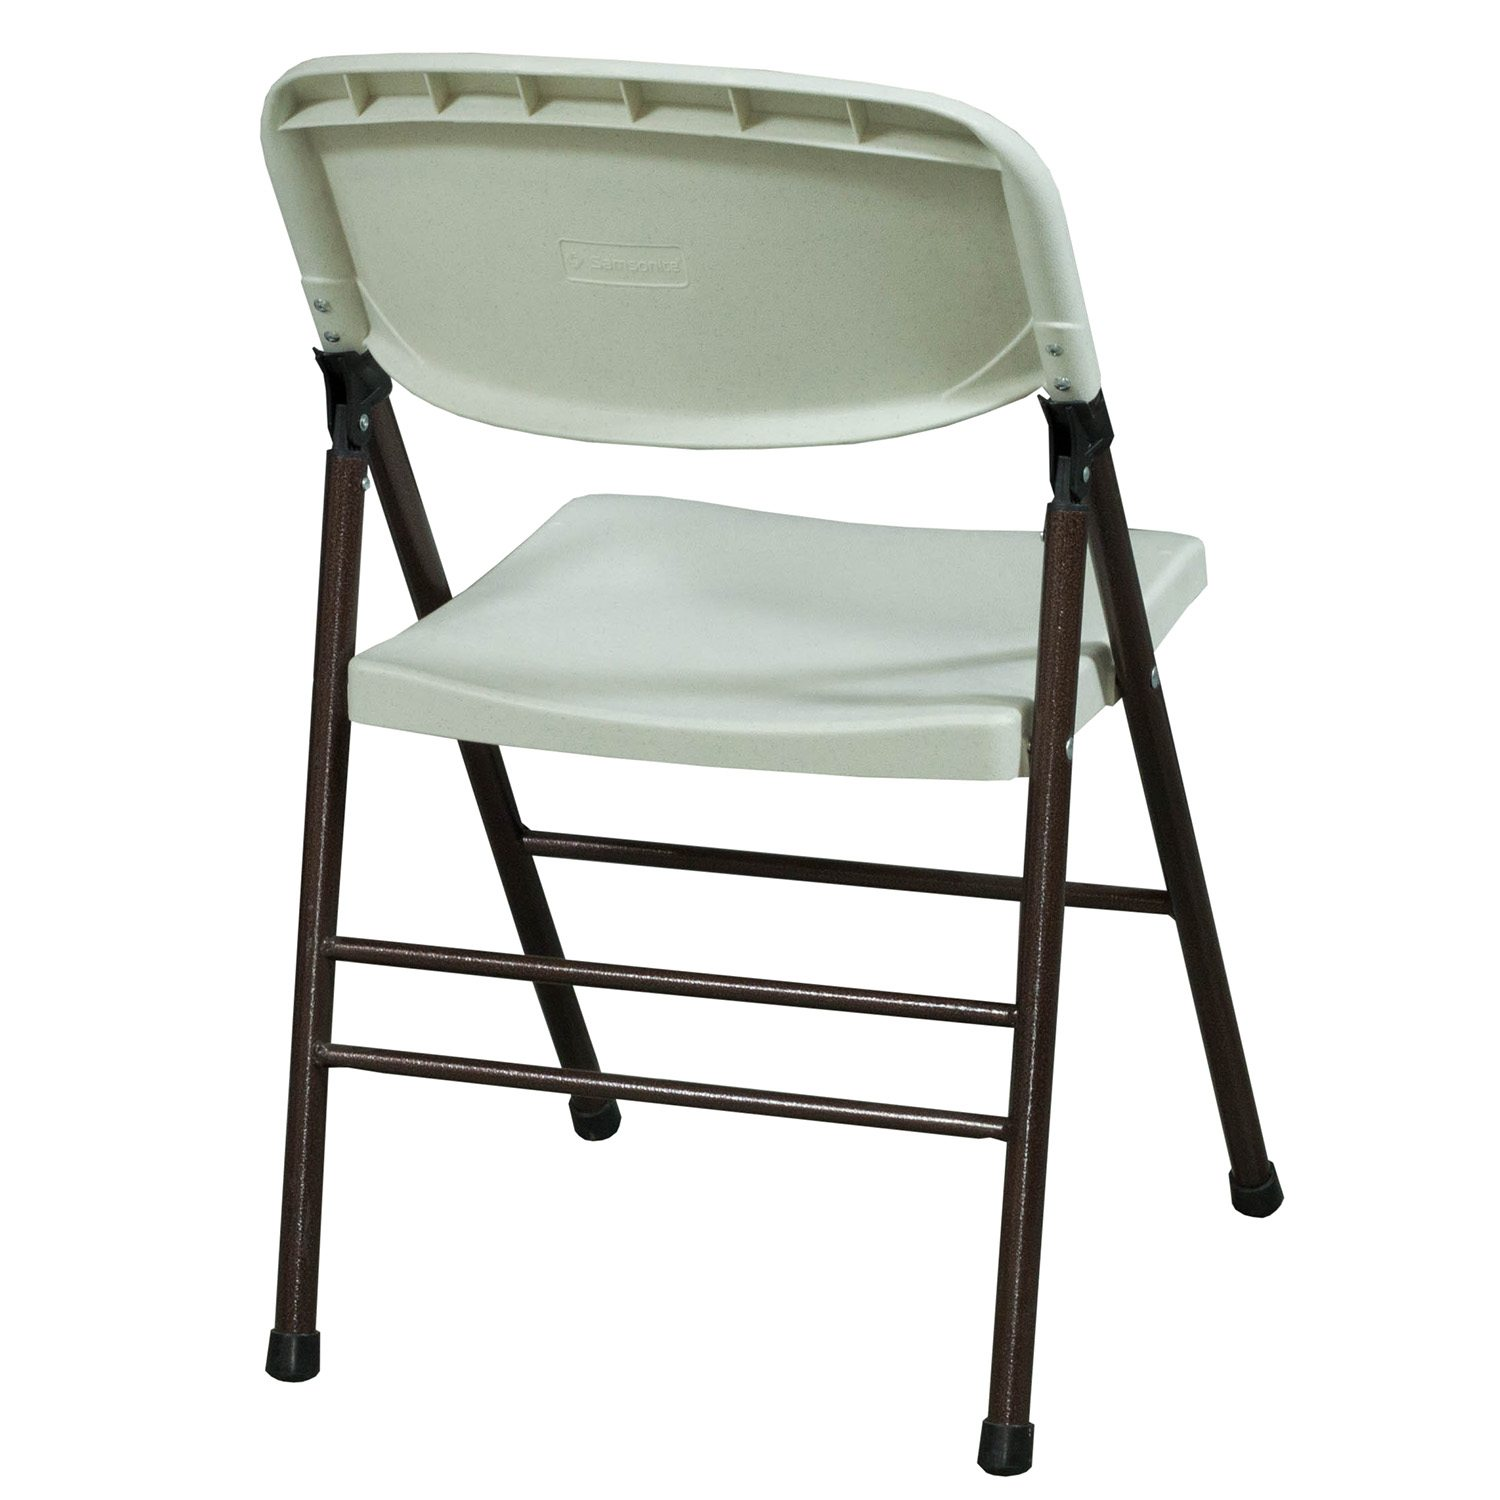 Acrylic Folding Chairs Samsonite Used Plastic Folding Chair White National